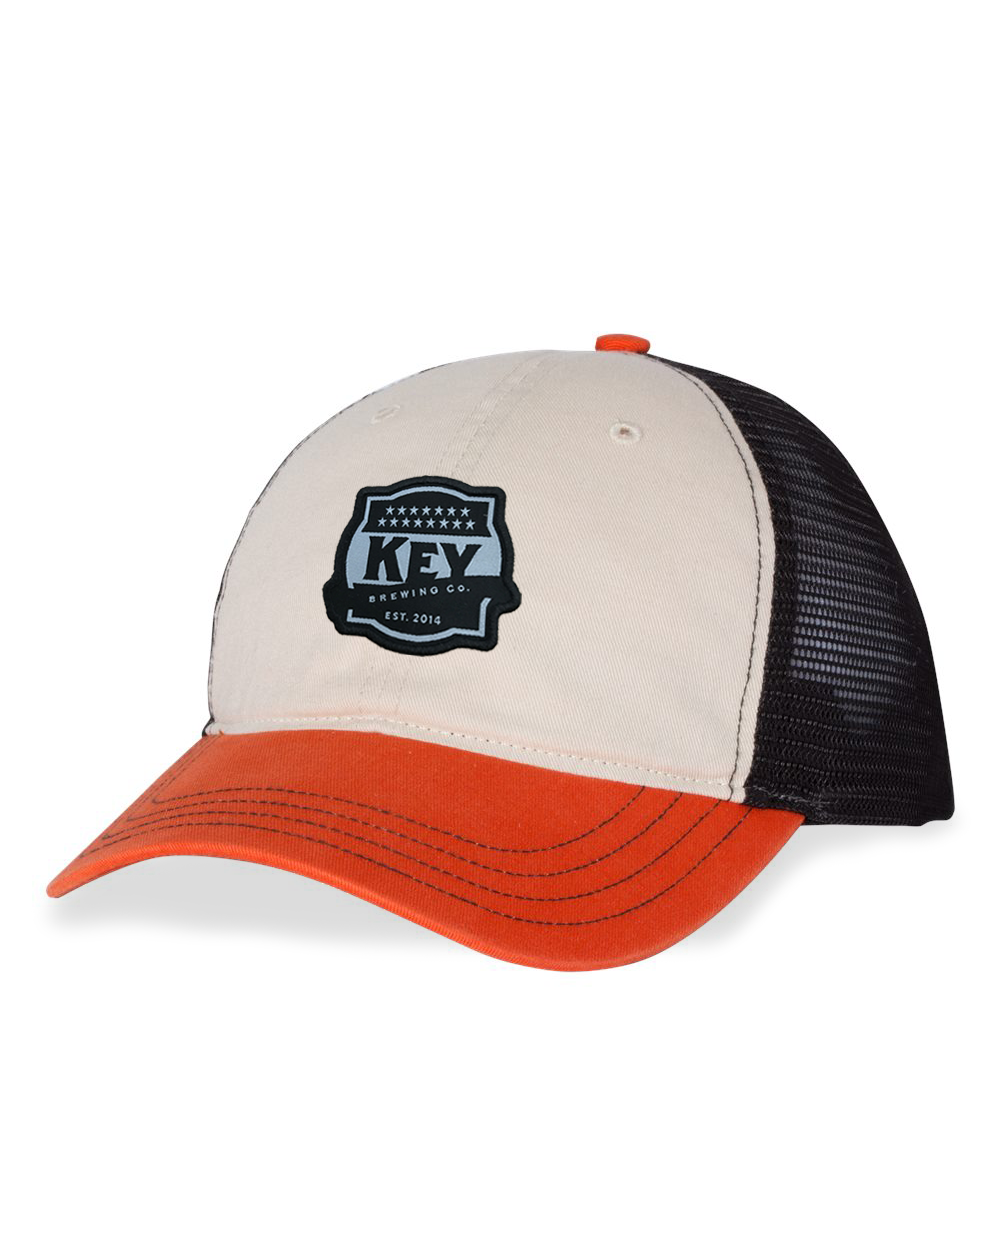 Key Black/Orange Unstructured Cap